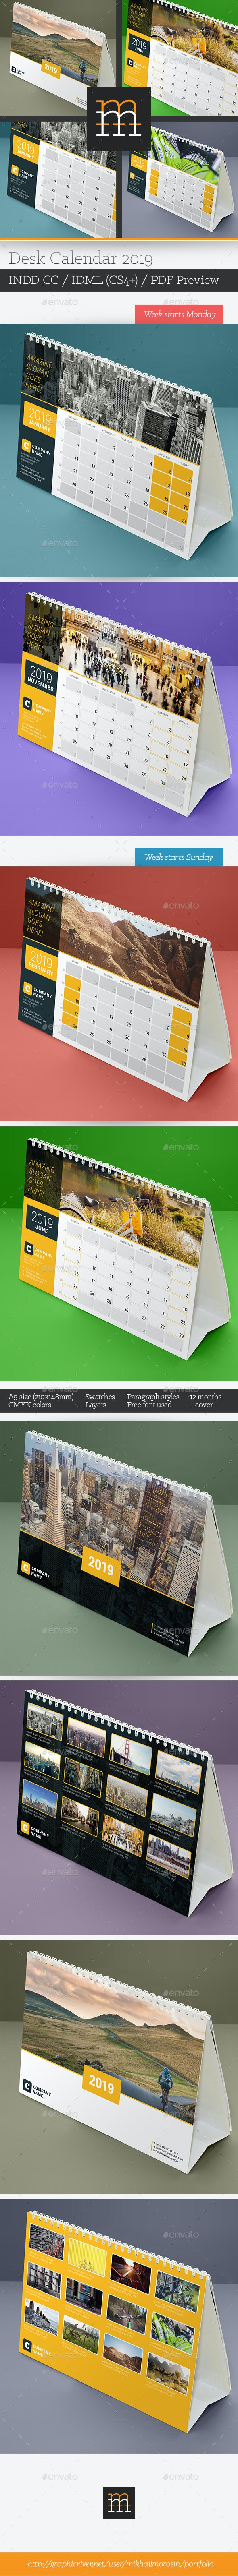 Desk Calendar 2019 - Calendars Stationery